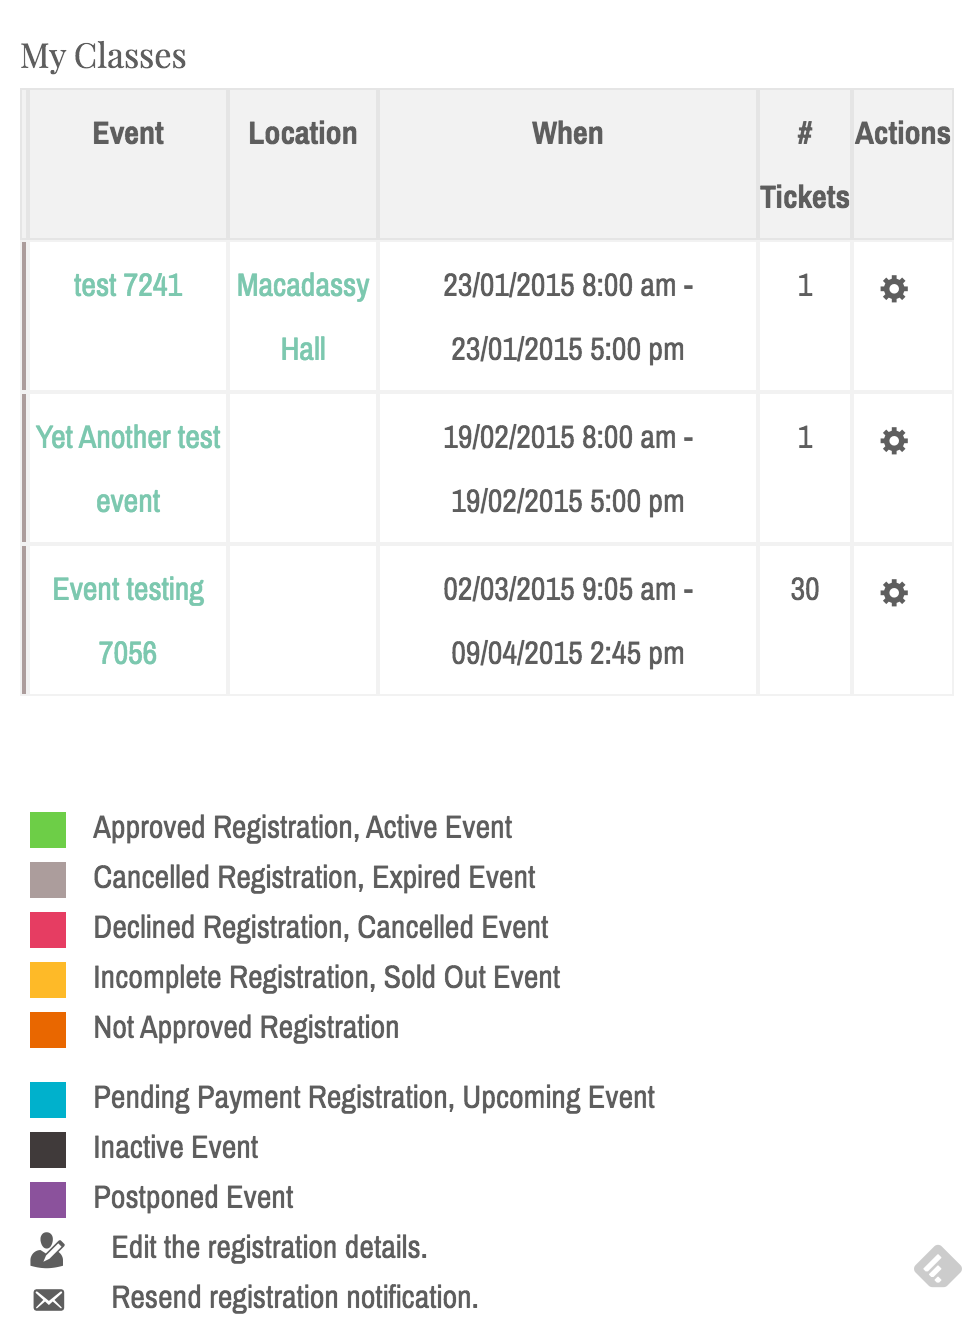 My events table